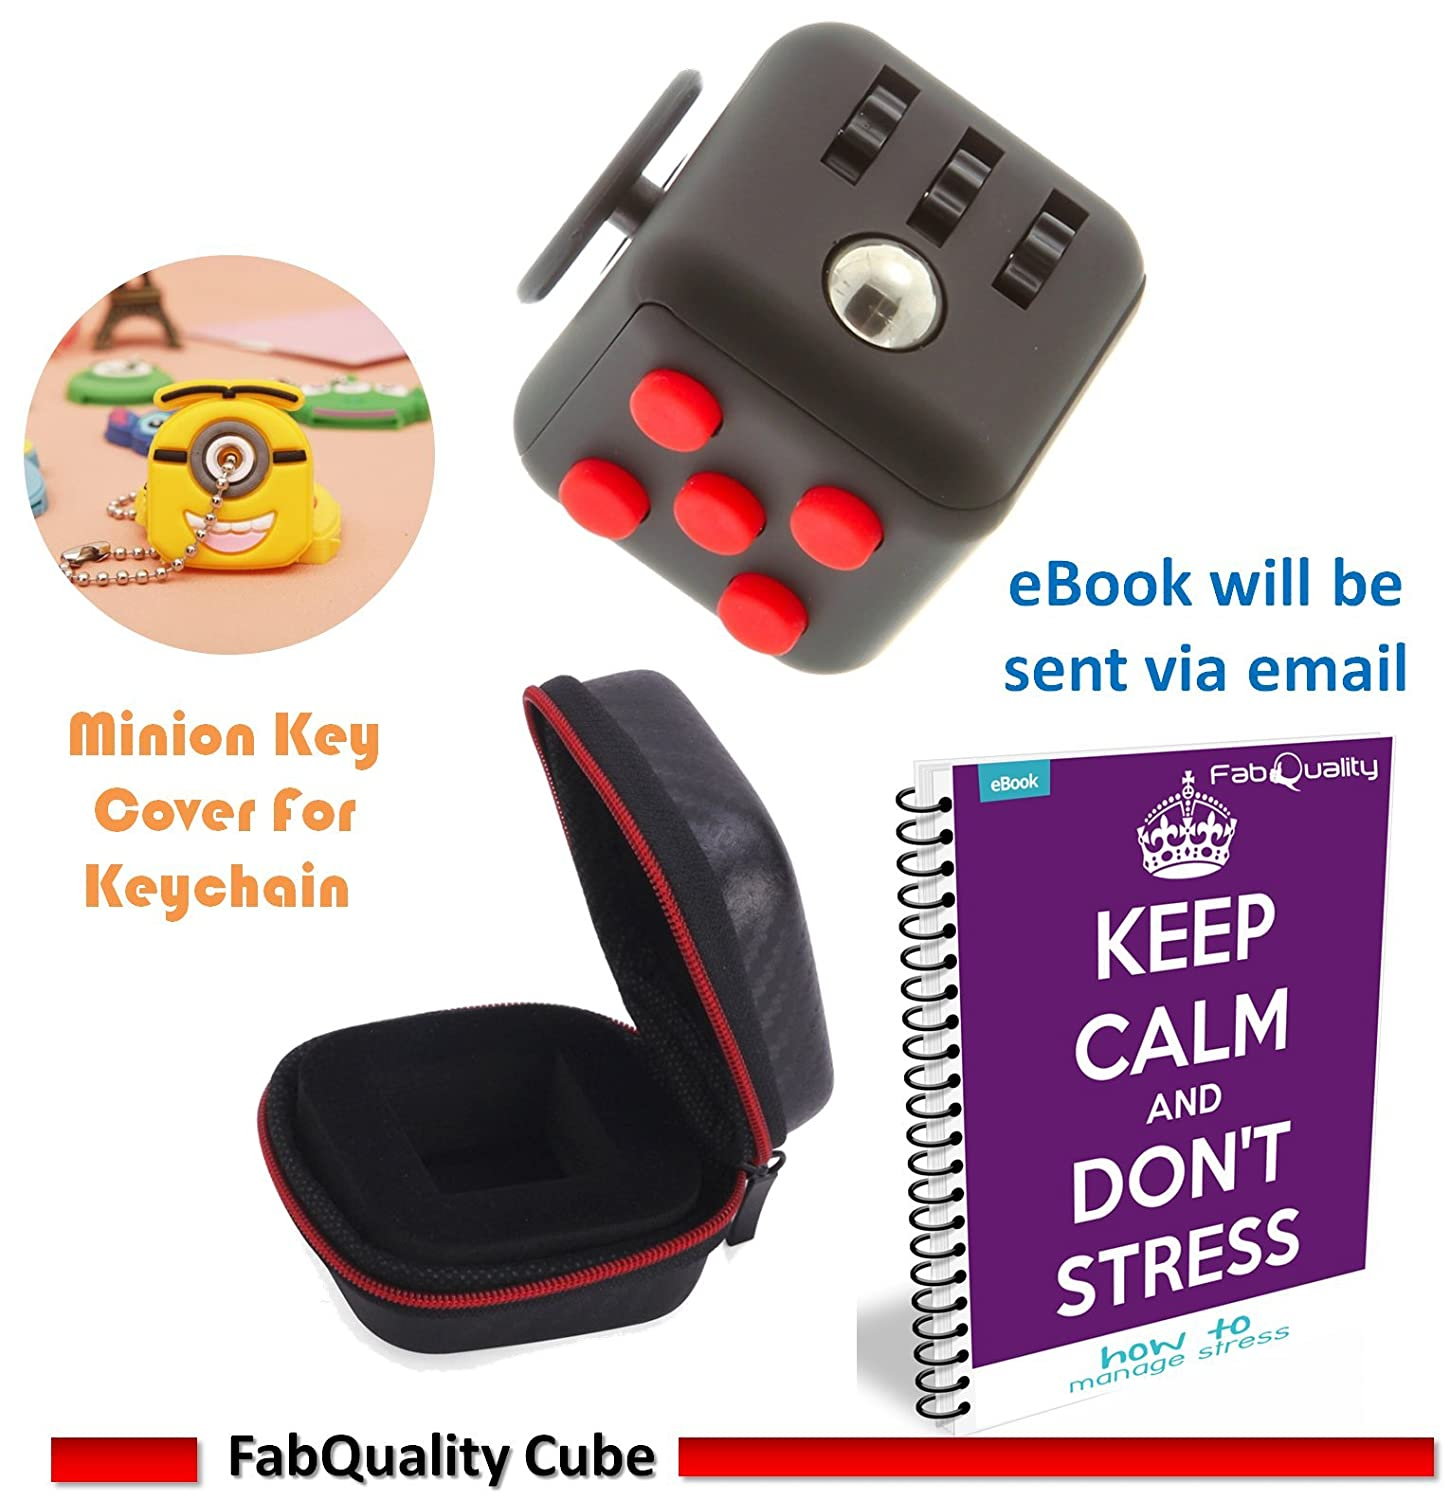 Fabquality Cube Anxiety Attention Toy With Bonus Case + Ebook Included +  Minion Key Chain  Relieves Stress And Anxiety And Relax For Children And  Adults